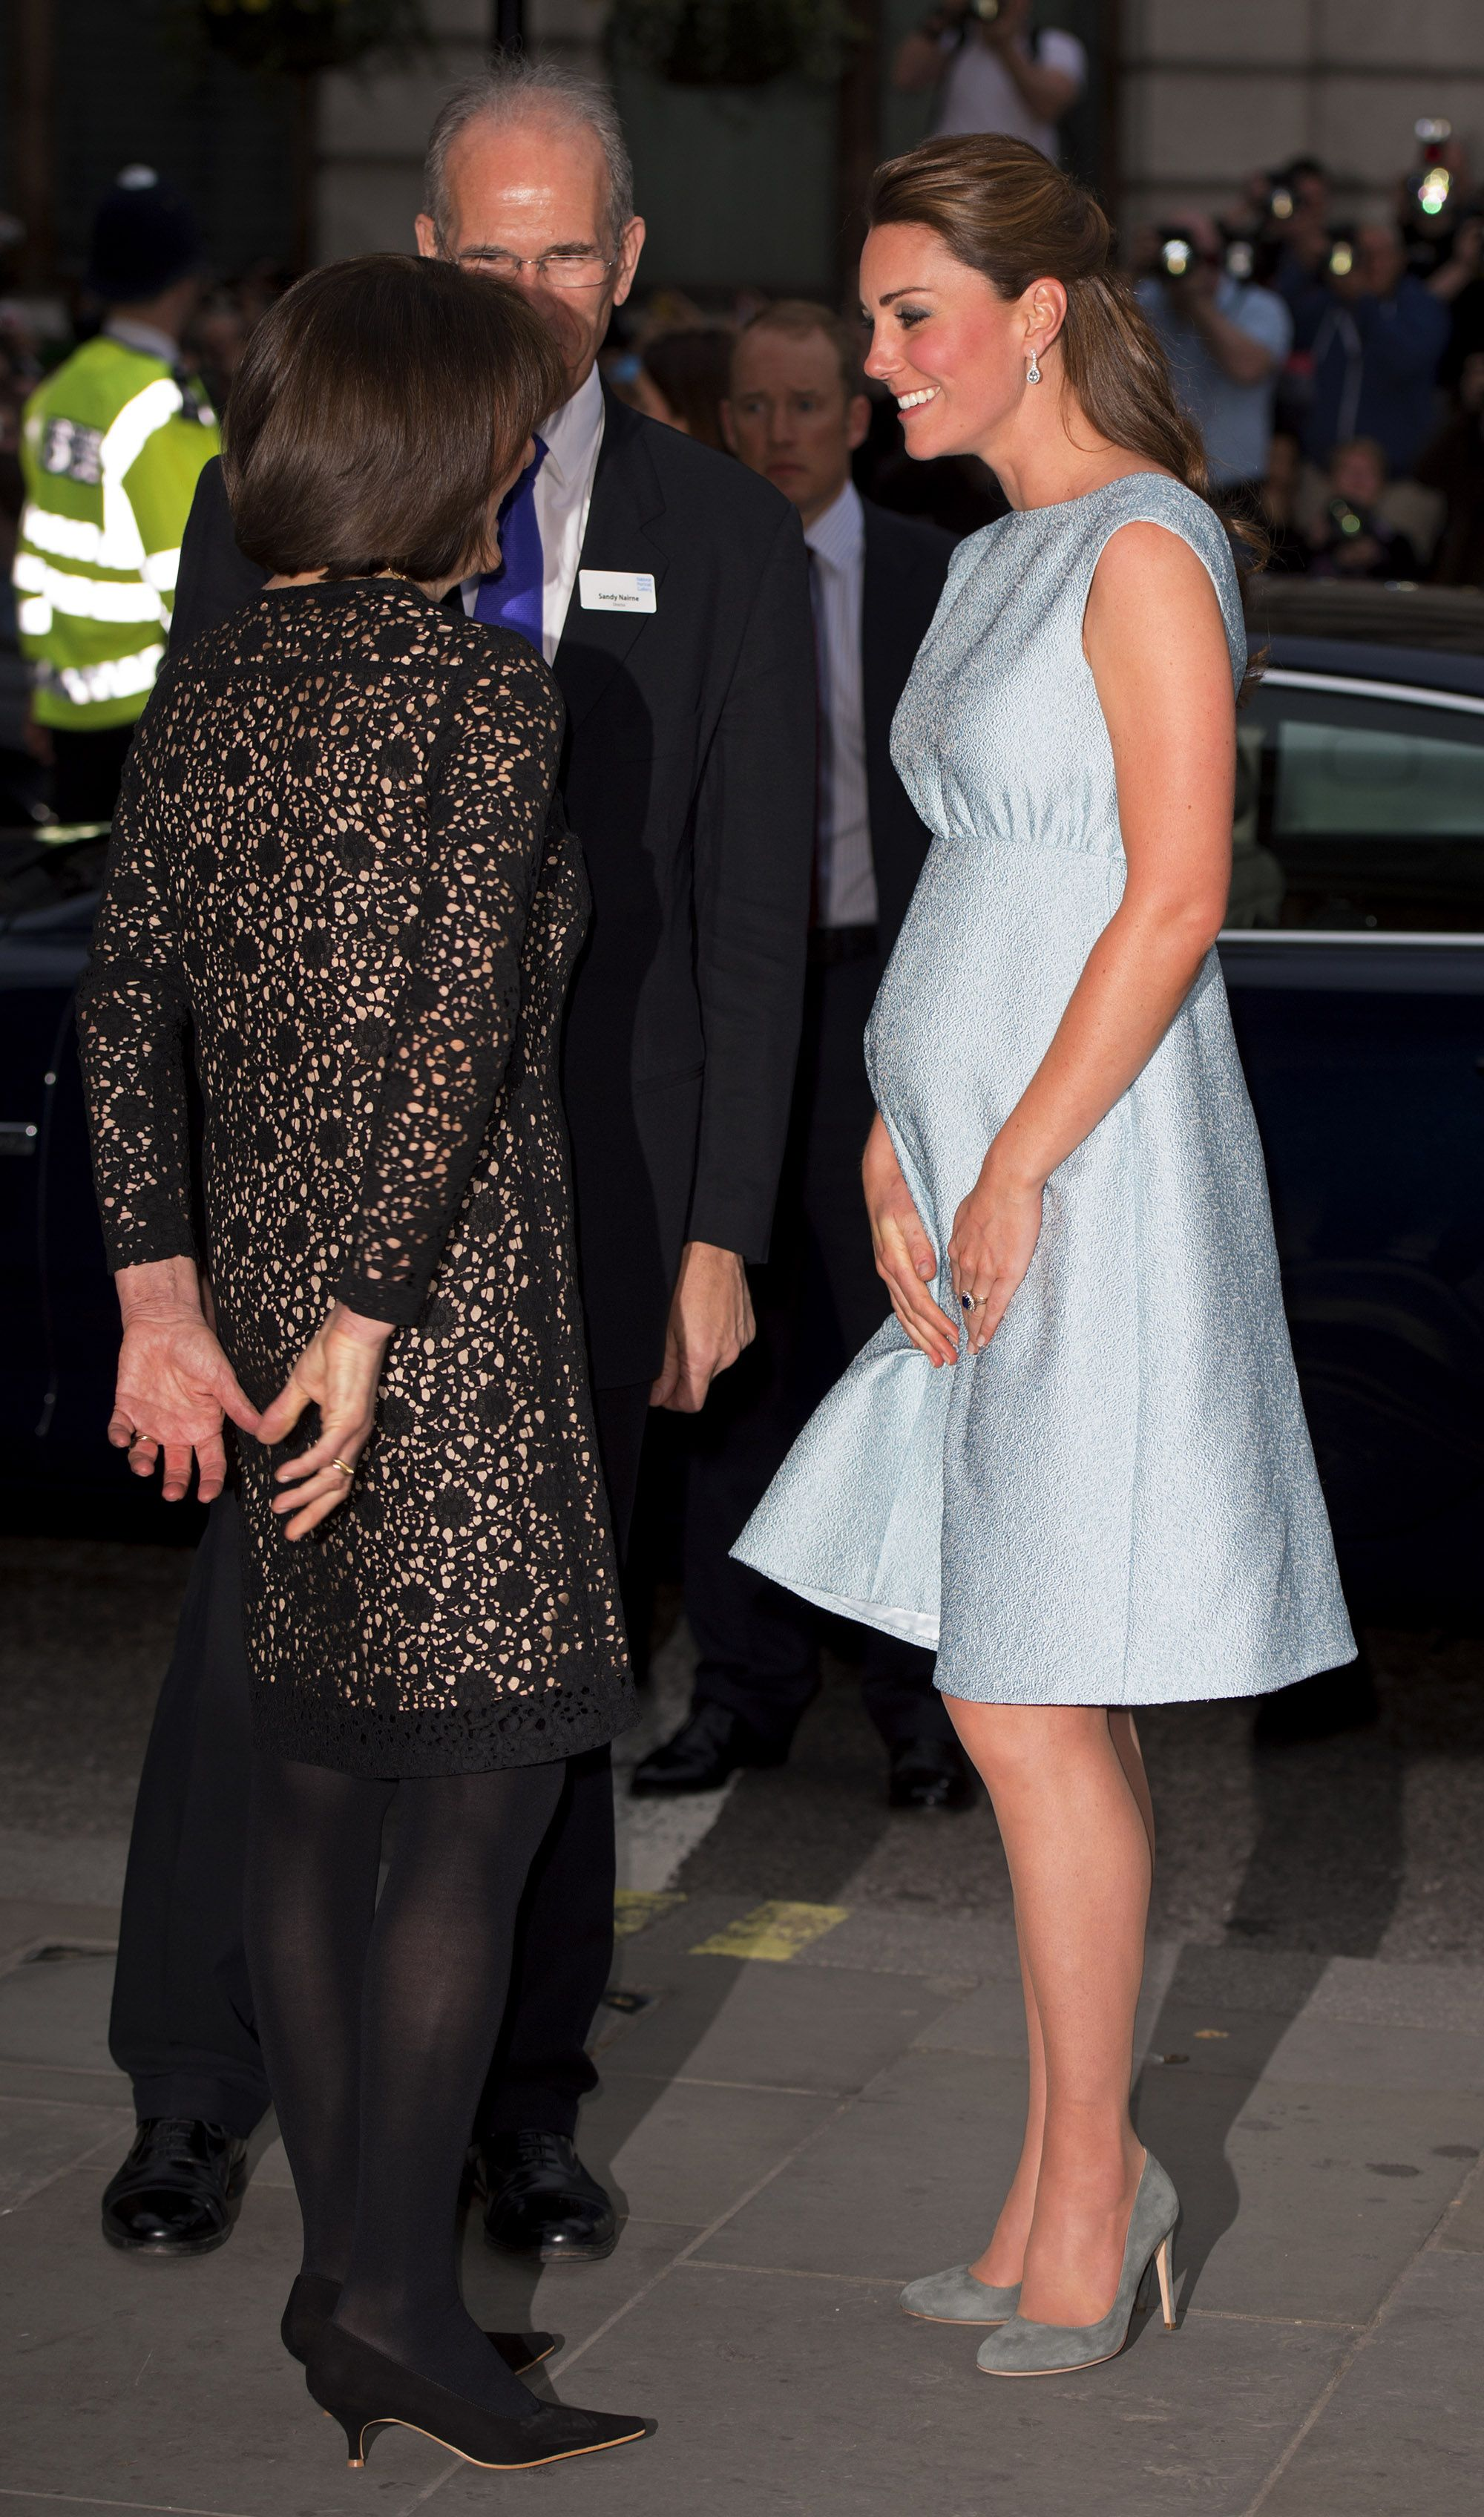 ab980110468 50 Best Kate Middleton Pregnant Style Looks - Princess Kate Maternity  Fashion